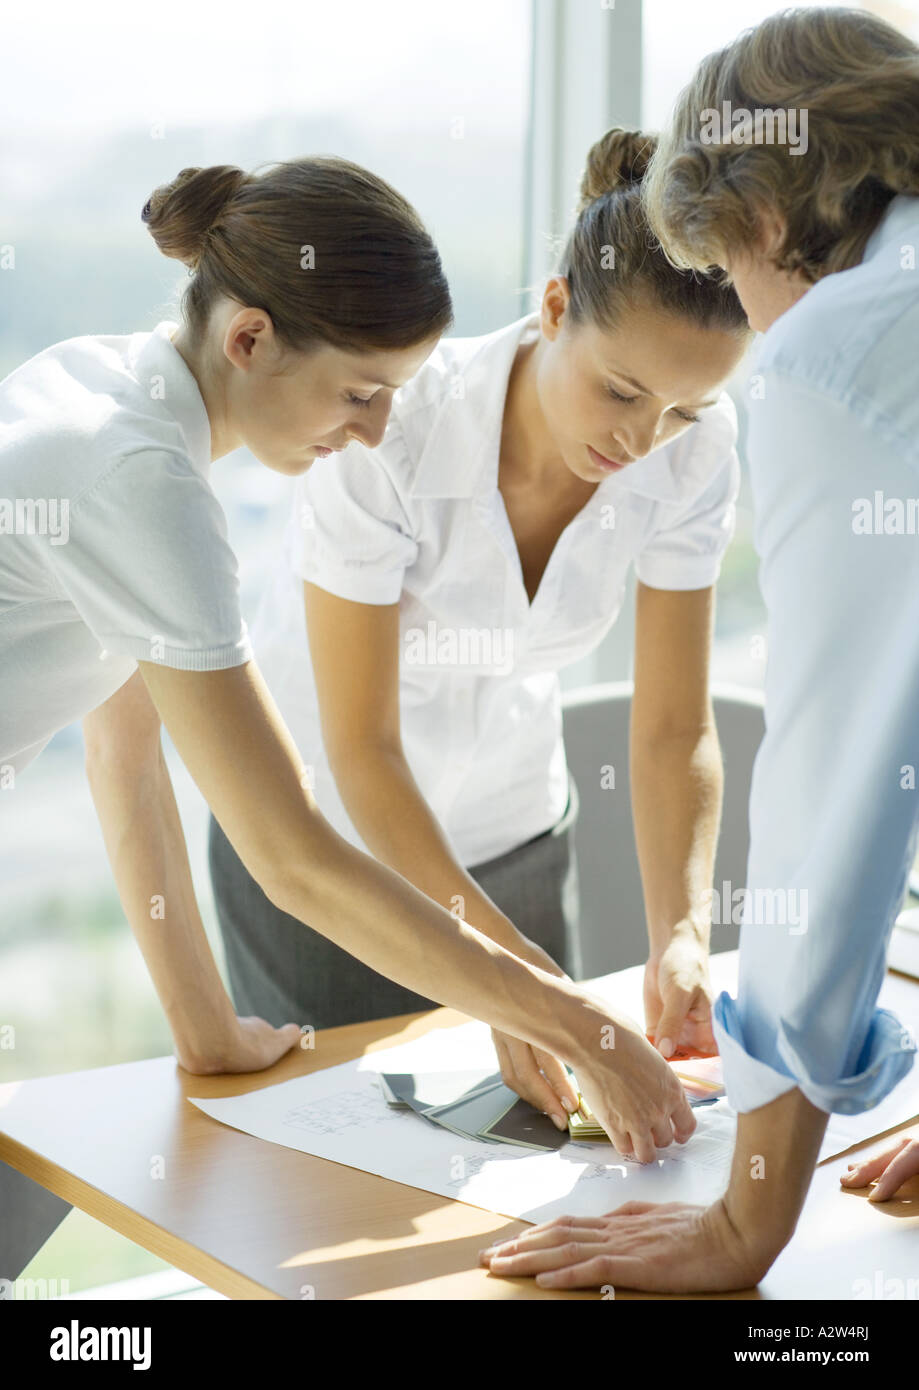 Two female and one male professional looking at color swatches - Stock Image